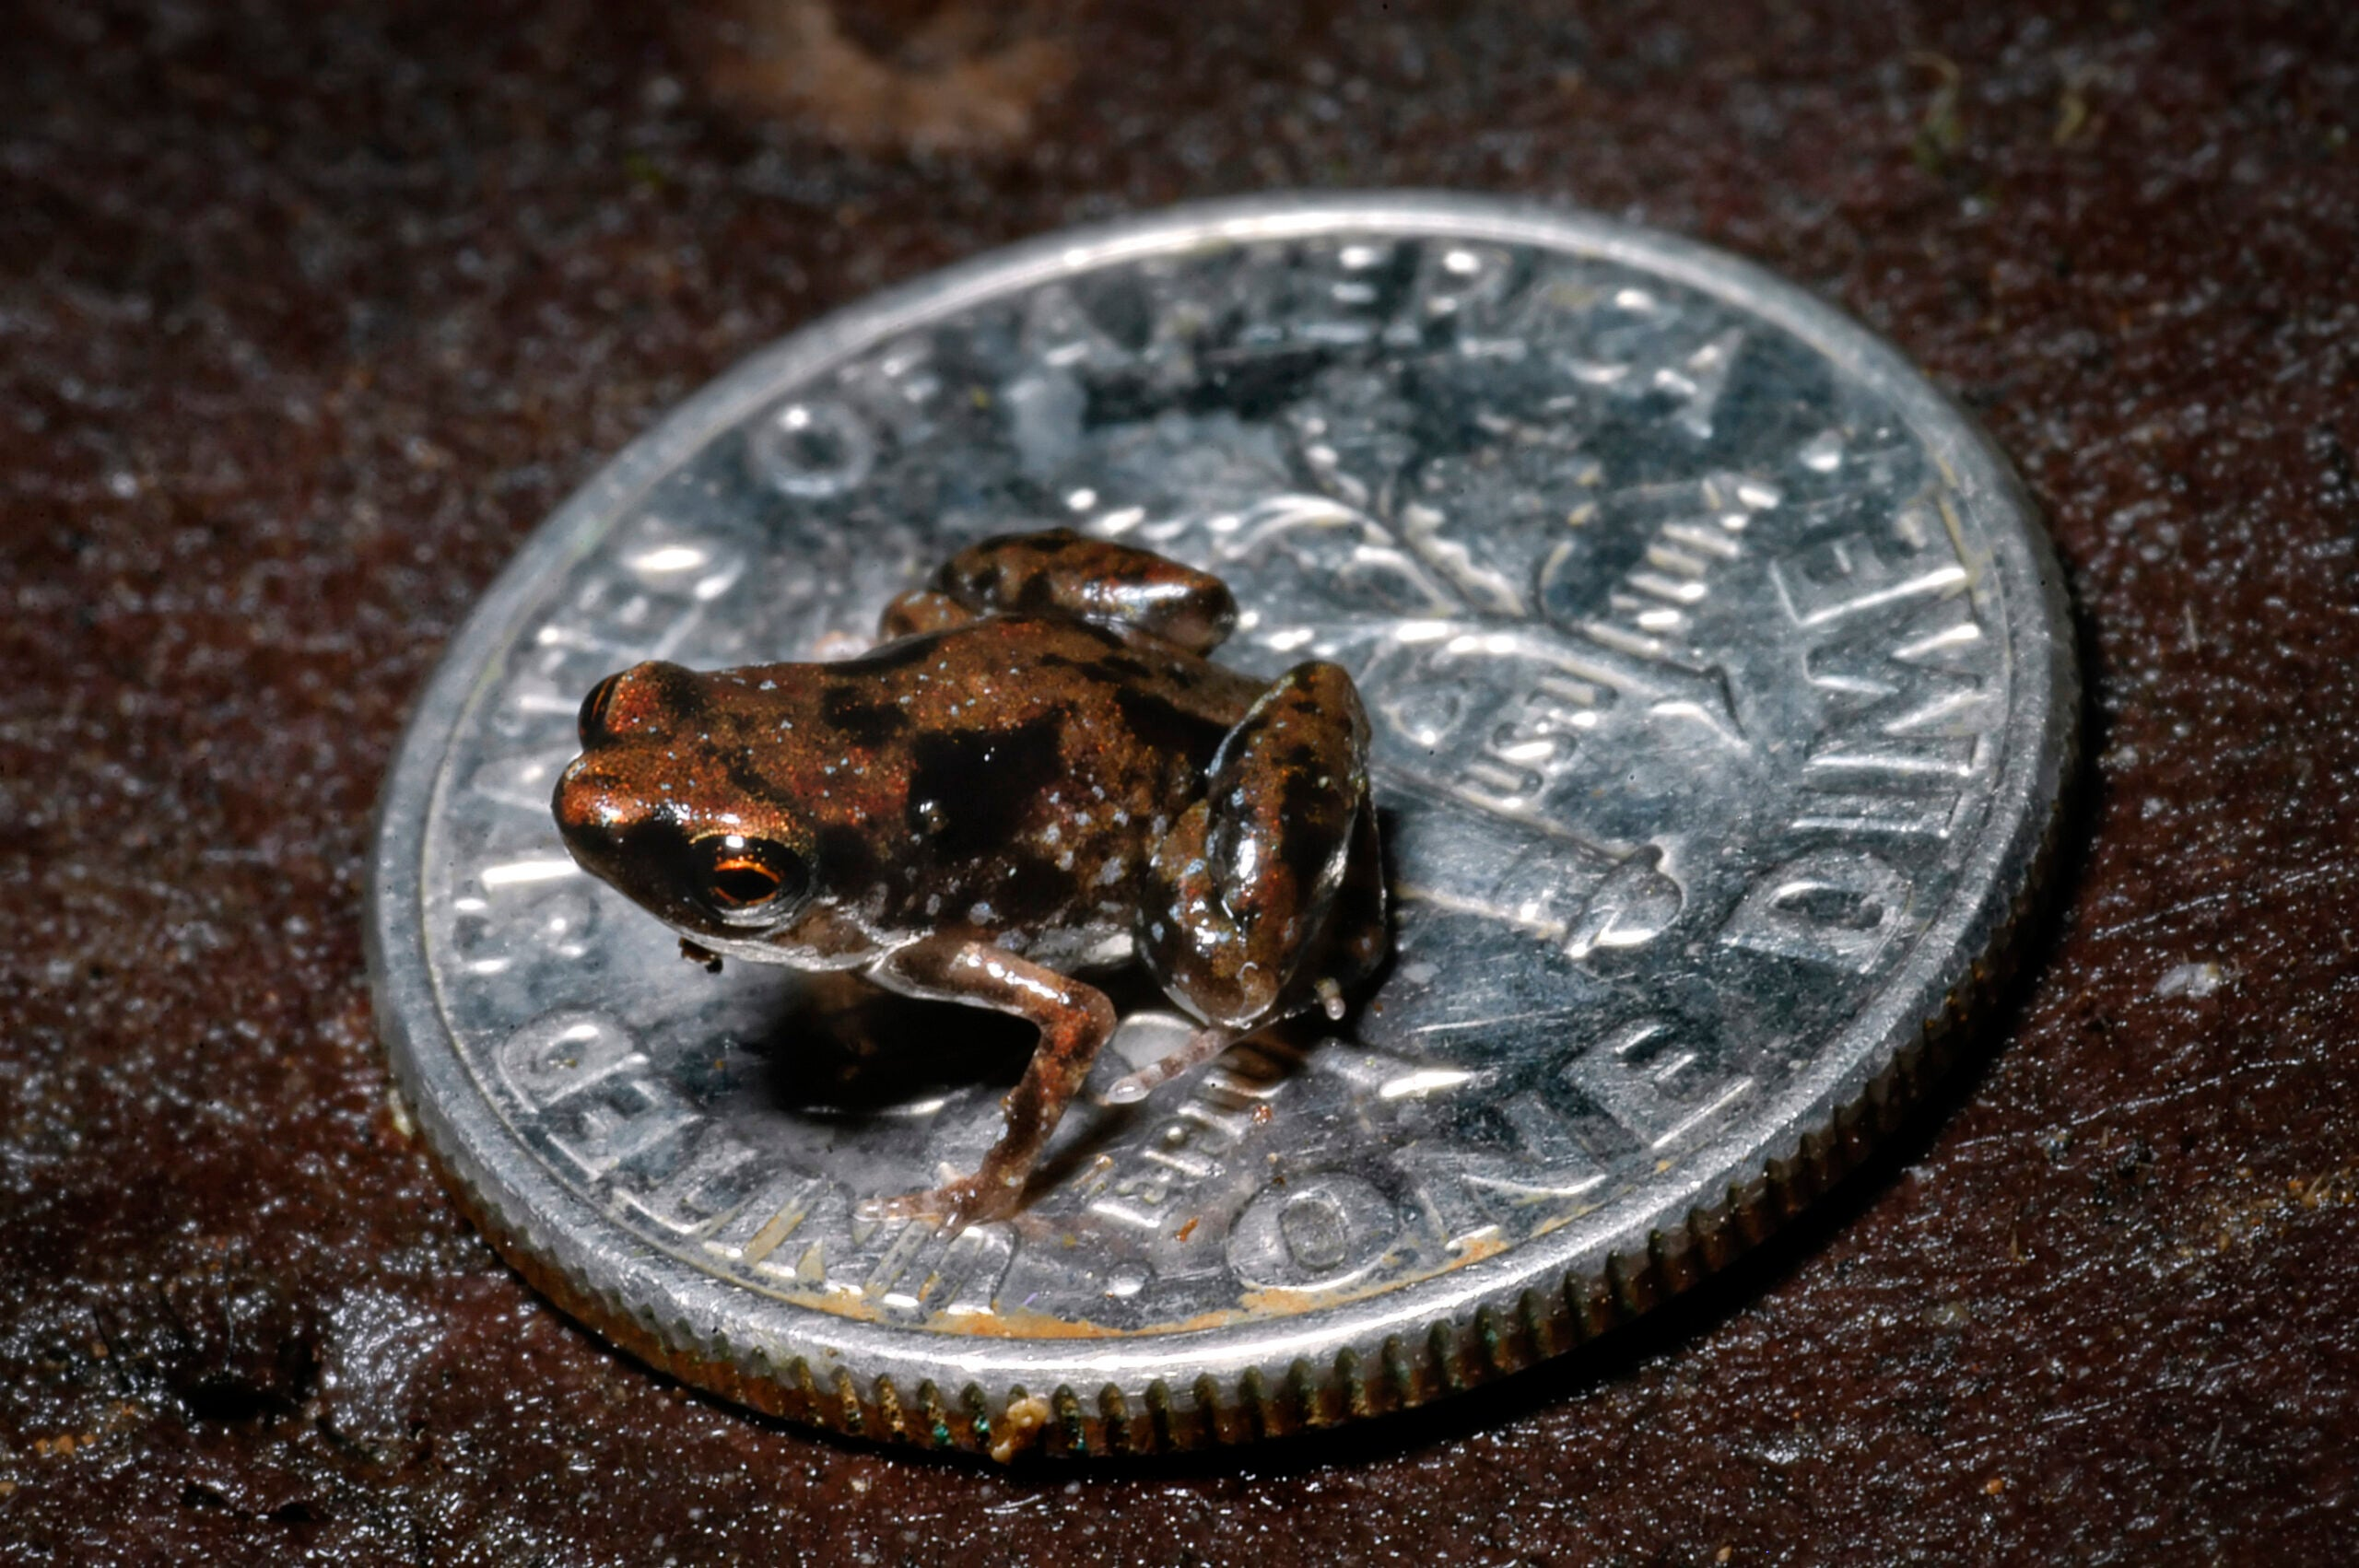 This Newly Discovered Frog Is the World's Smallest Vertebrate